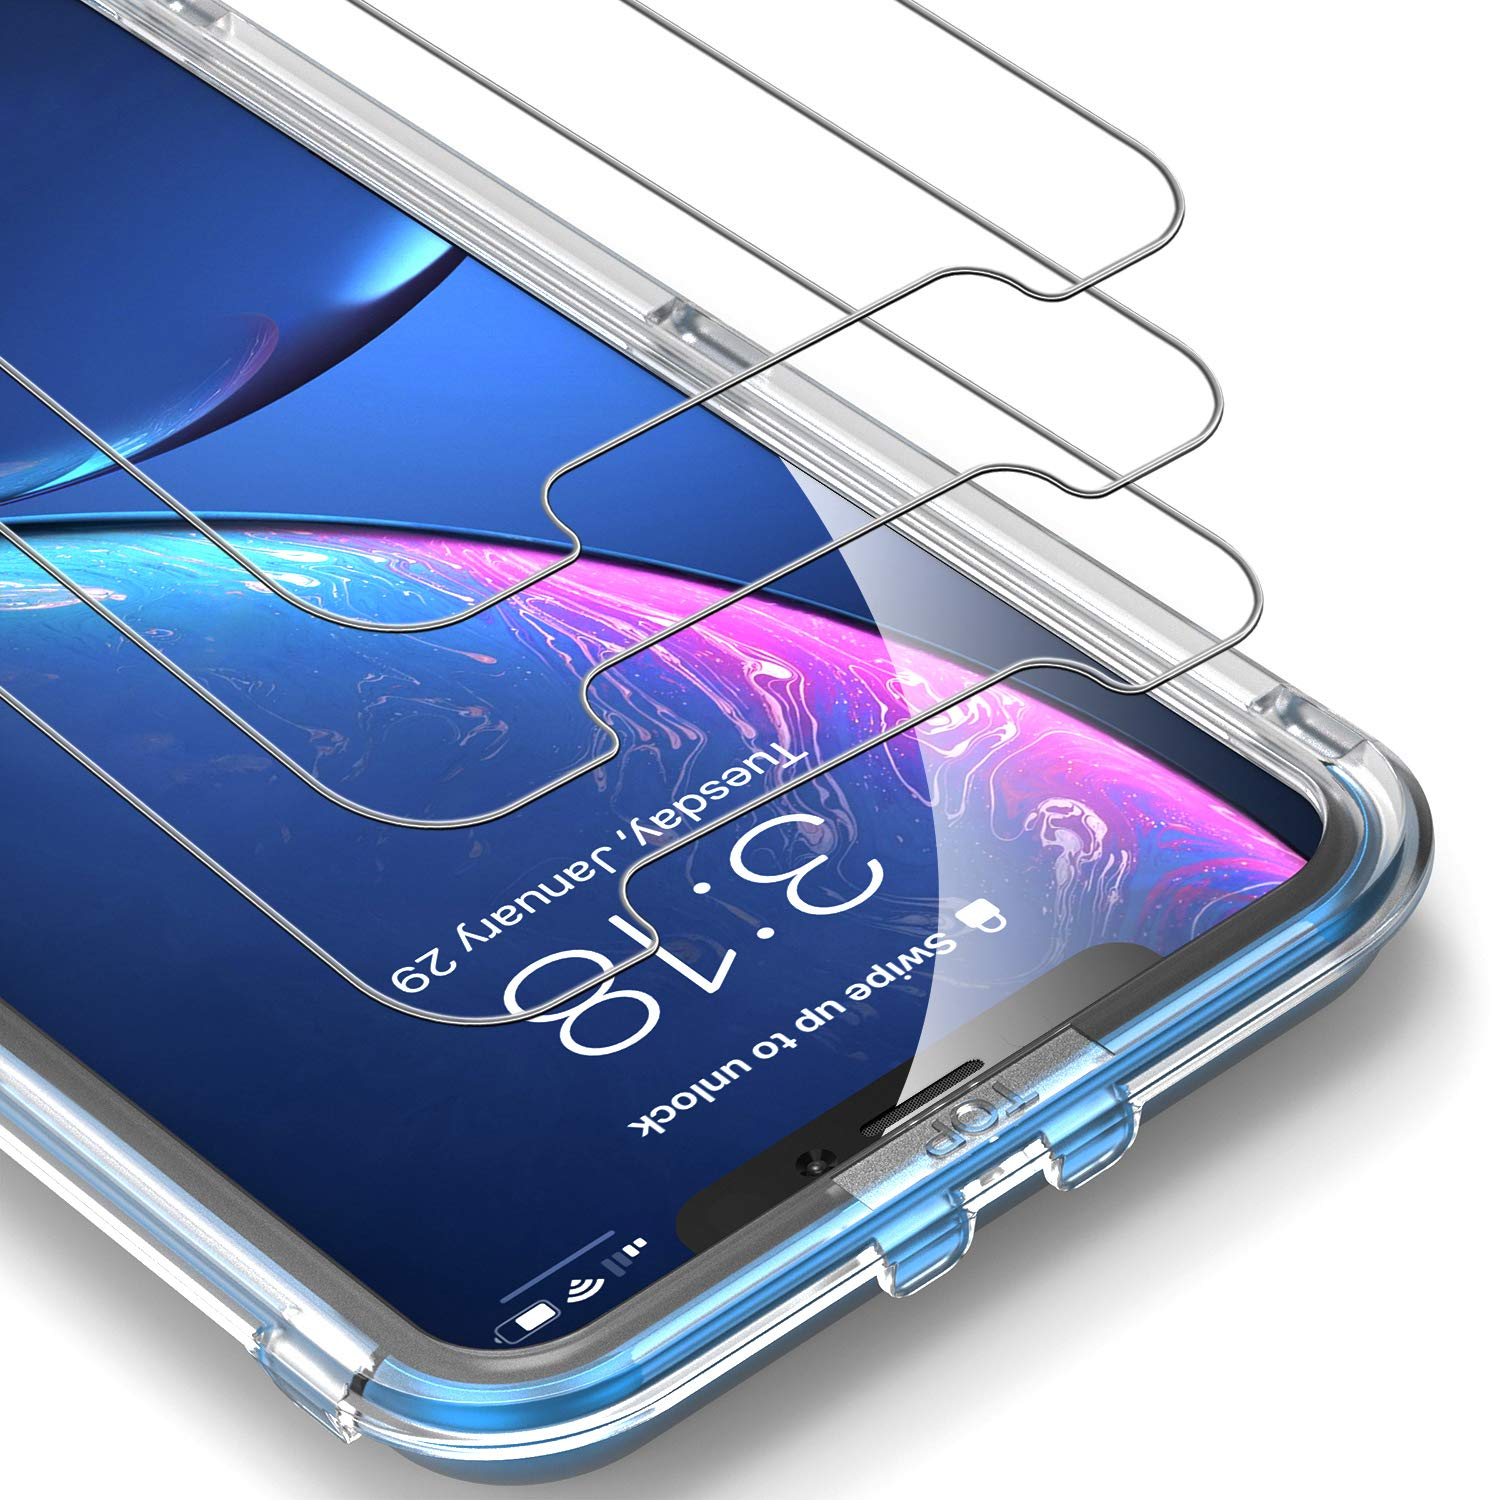 UNBREAKcable Screen Protector for iPhone XR [3-Pack] - 9H Hardness Tempered Glass for iPhone XR, Bubble-Free, Shatter-Proof, Free Installation Frame, Case-Friendly, 3D Touch Support by UNBREAKcable